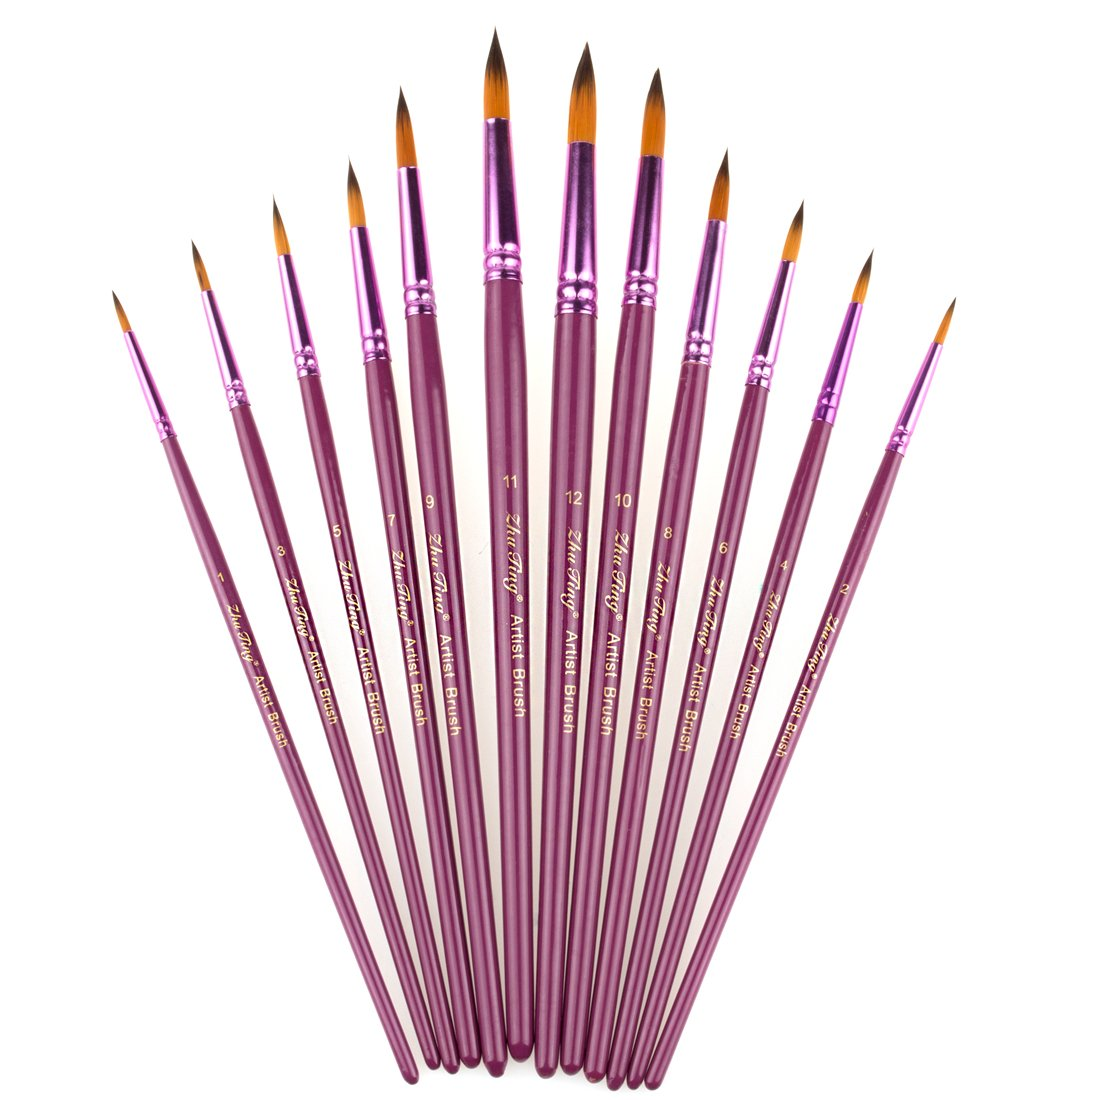 StarVast Painting Brushes, 12pcs Professional Flat Paint Brush Set for Watercolor/Oil/Acrylic/Crafts/Rock/Face Painting and Gouache - Purple